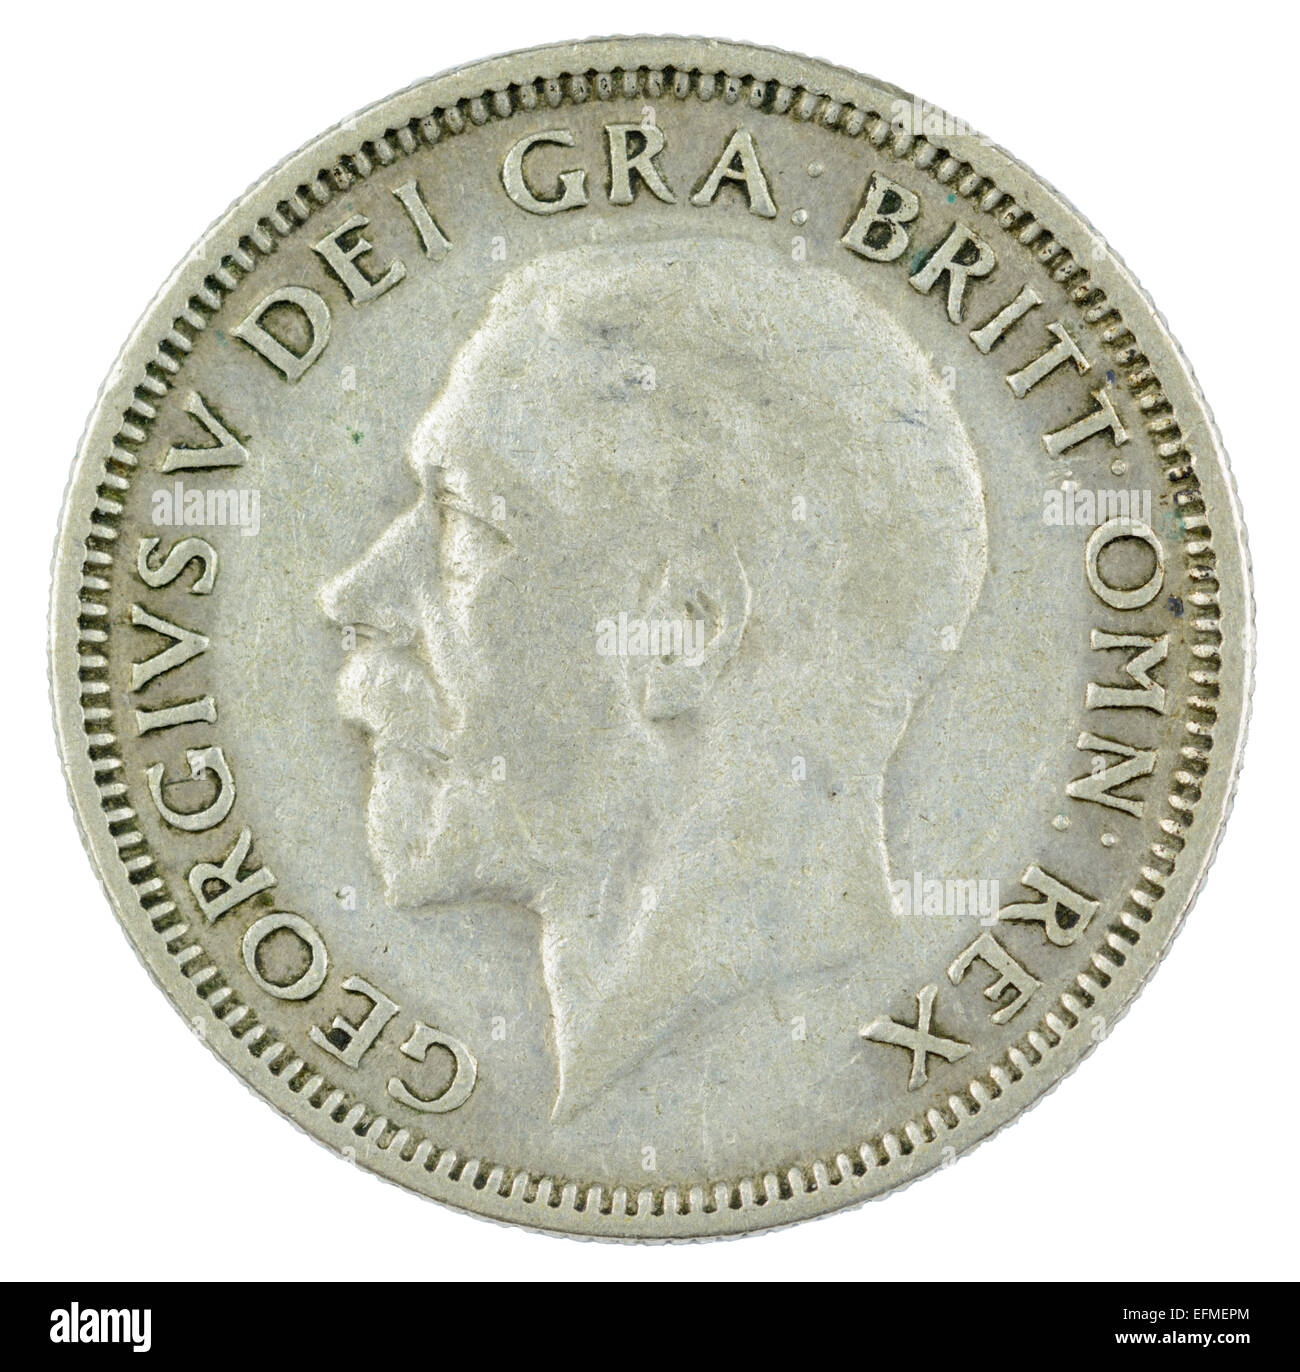 One Shilling coin from King George V reign (1934 English version, heads side). - Stock Image